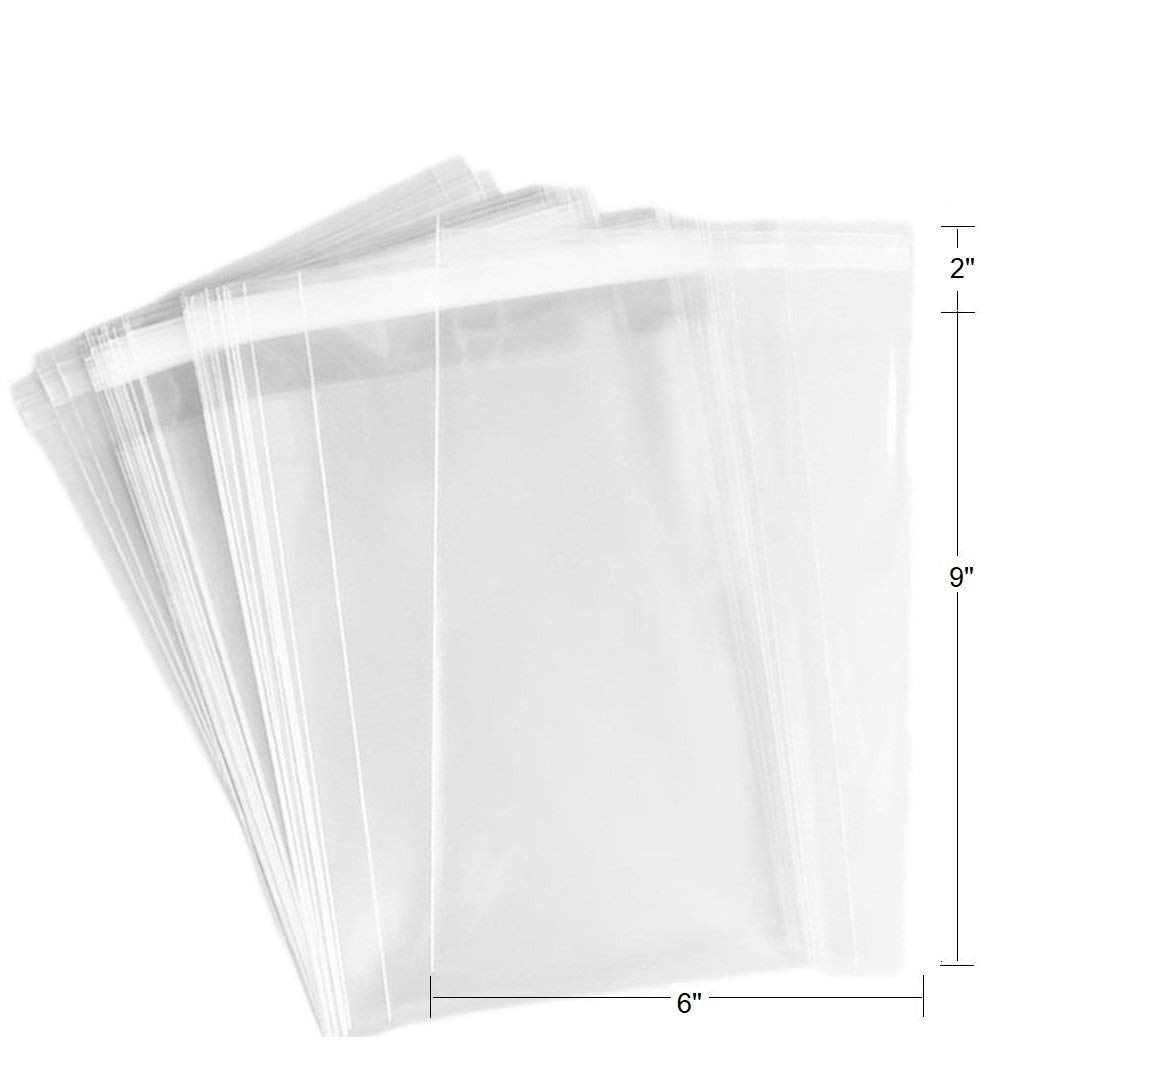 3 x 4 Cookie,jewelry items bags. Candle Soap FlanicaUSA 100 pcs Clear Flat Resealable Cello// Cellophane Bags Good for Bakery